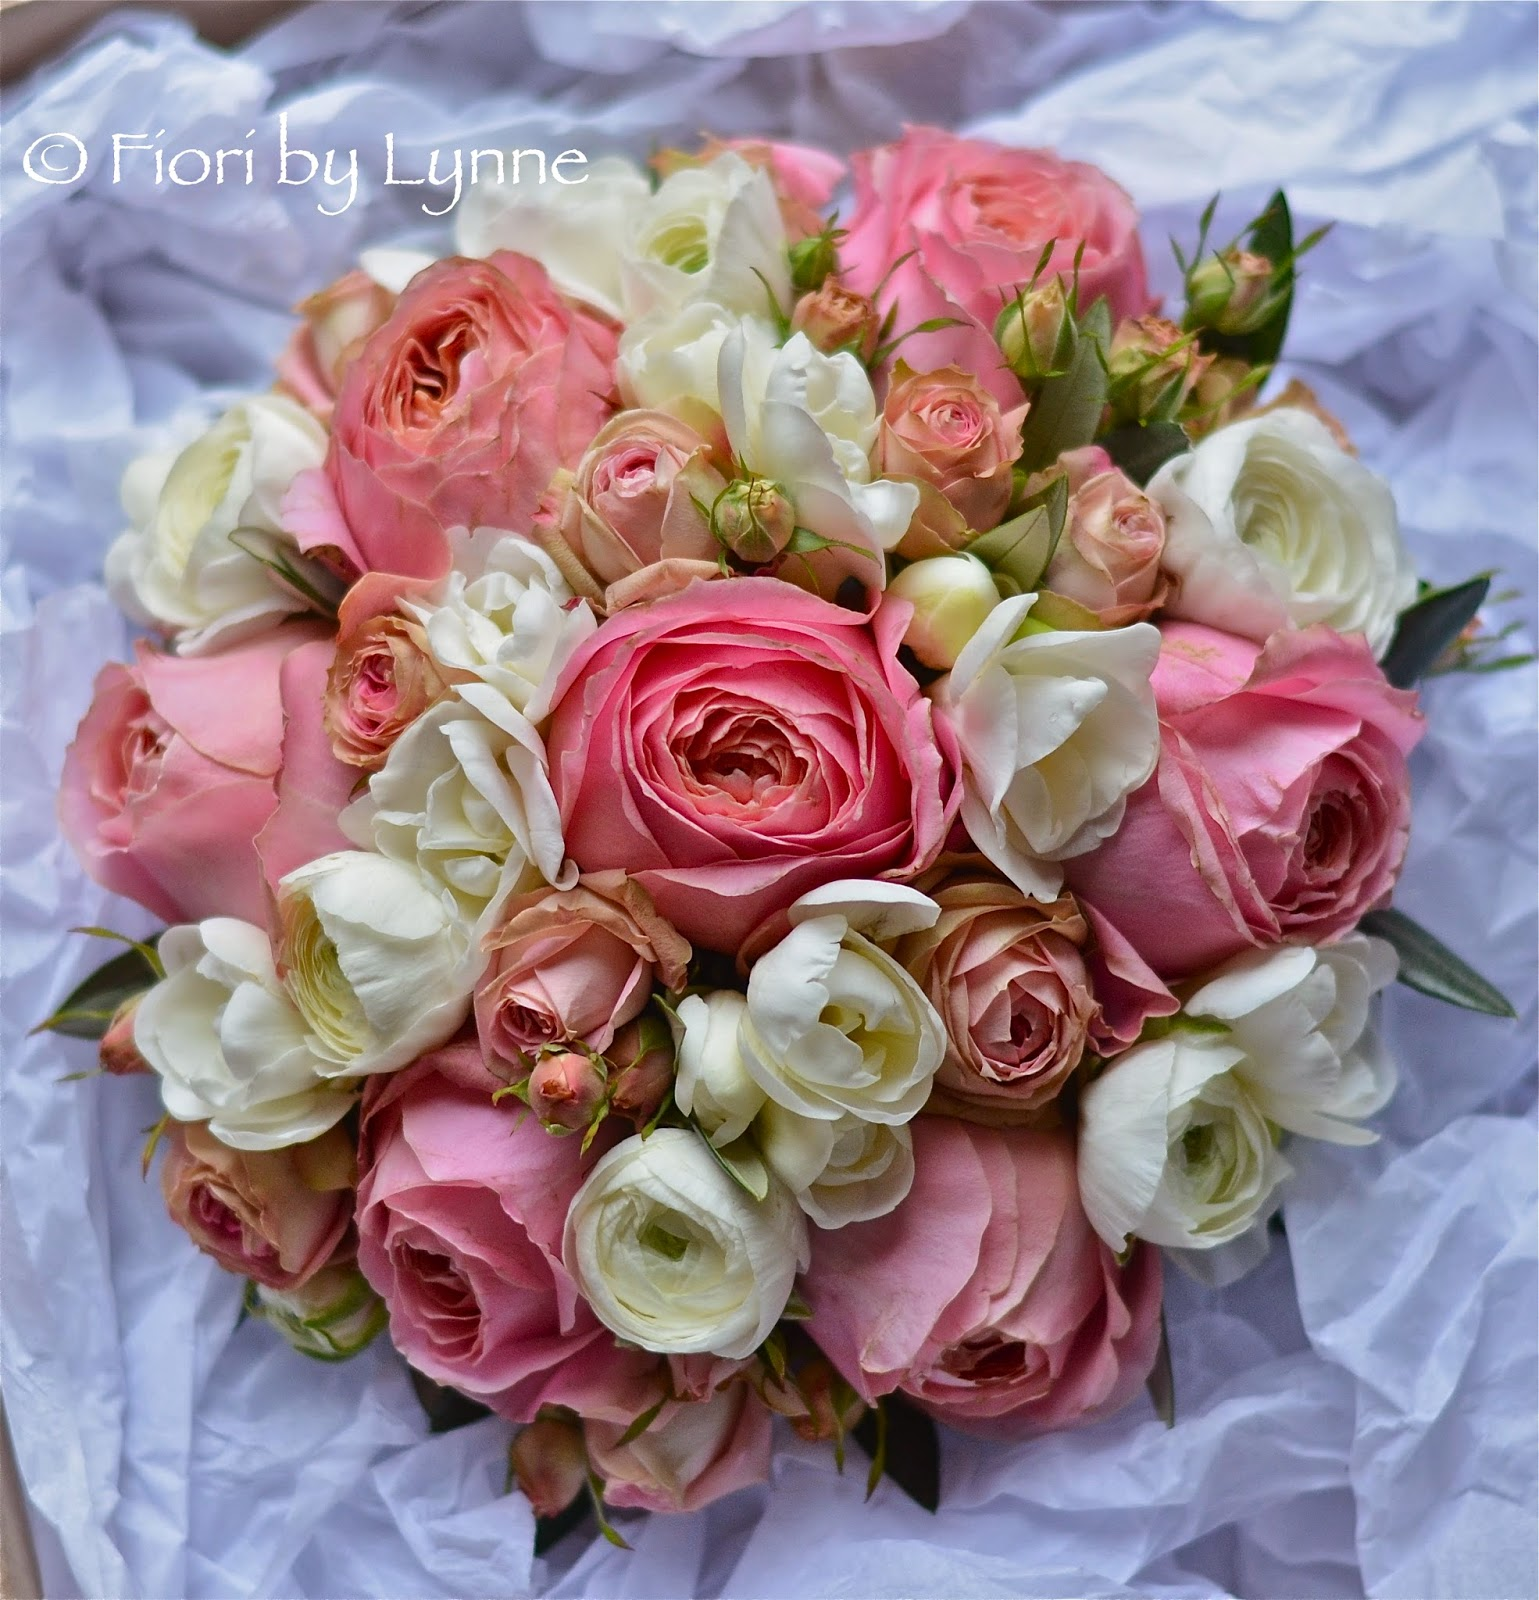 Wedding flowers blog lauras coral dusky pink silver and white lauras coral dusky pink silver and white wedding flowers rhinefield house mightylinksfo